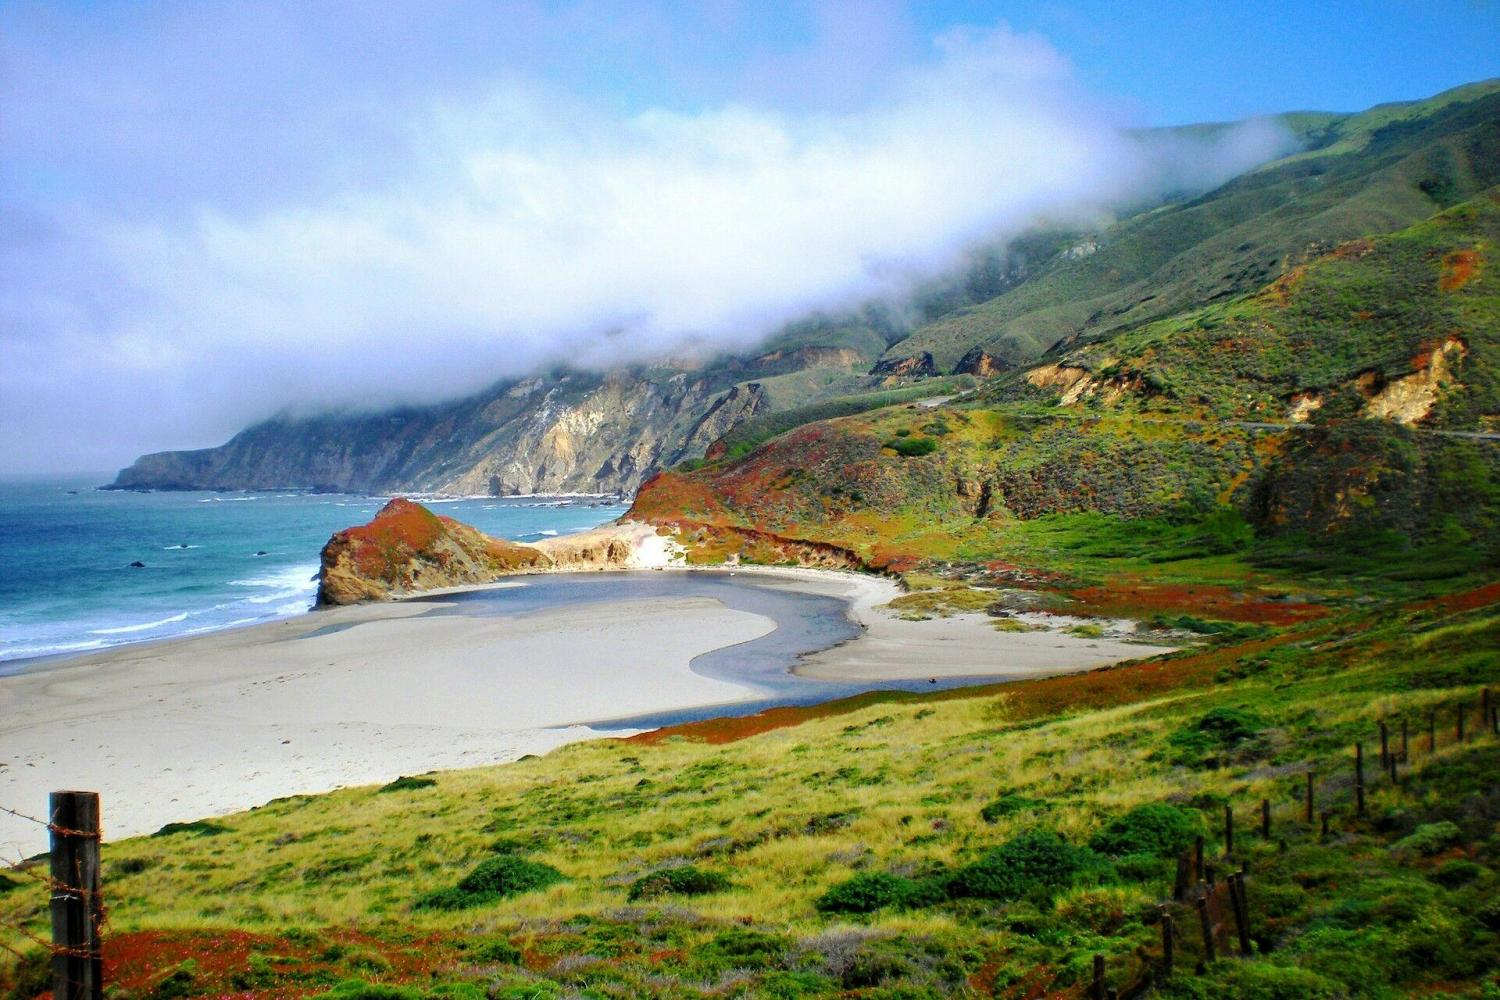 Monterey, Carmel & The 17-Mile Drive From San Francisco